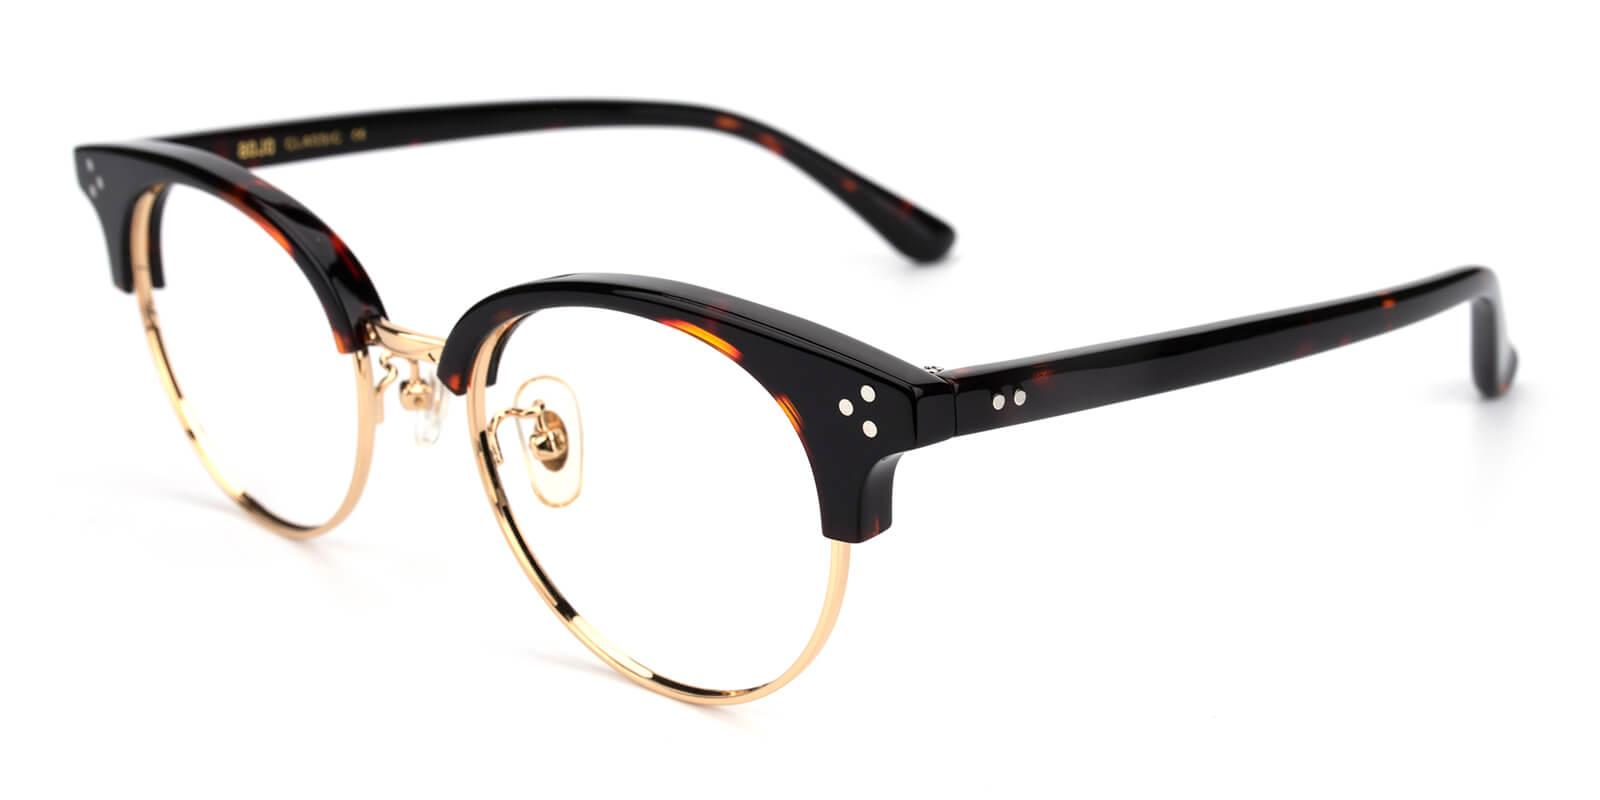 Jinjiay-Tortoise-Oval-Metal-Eyeglasses-additional1